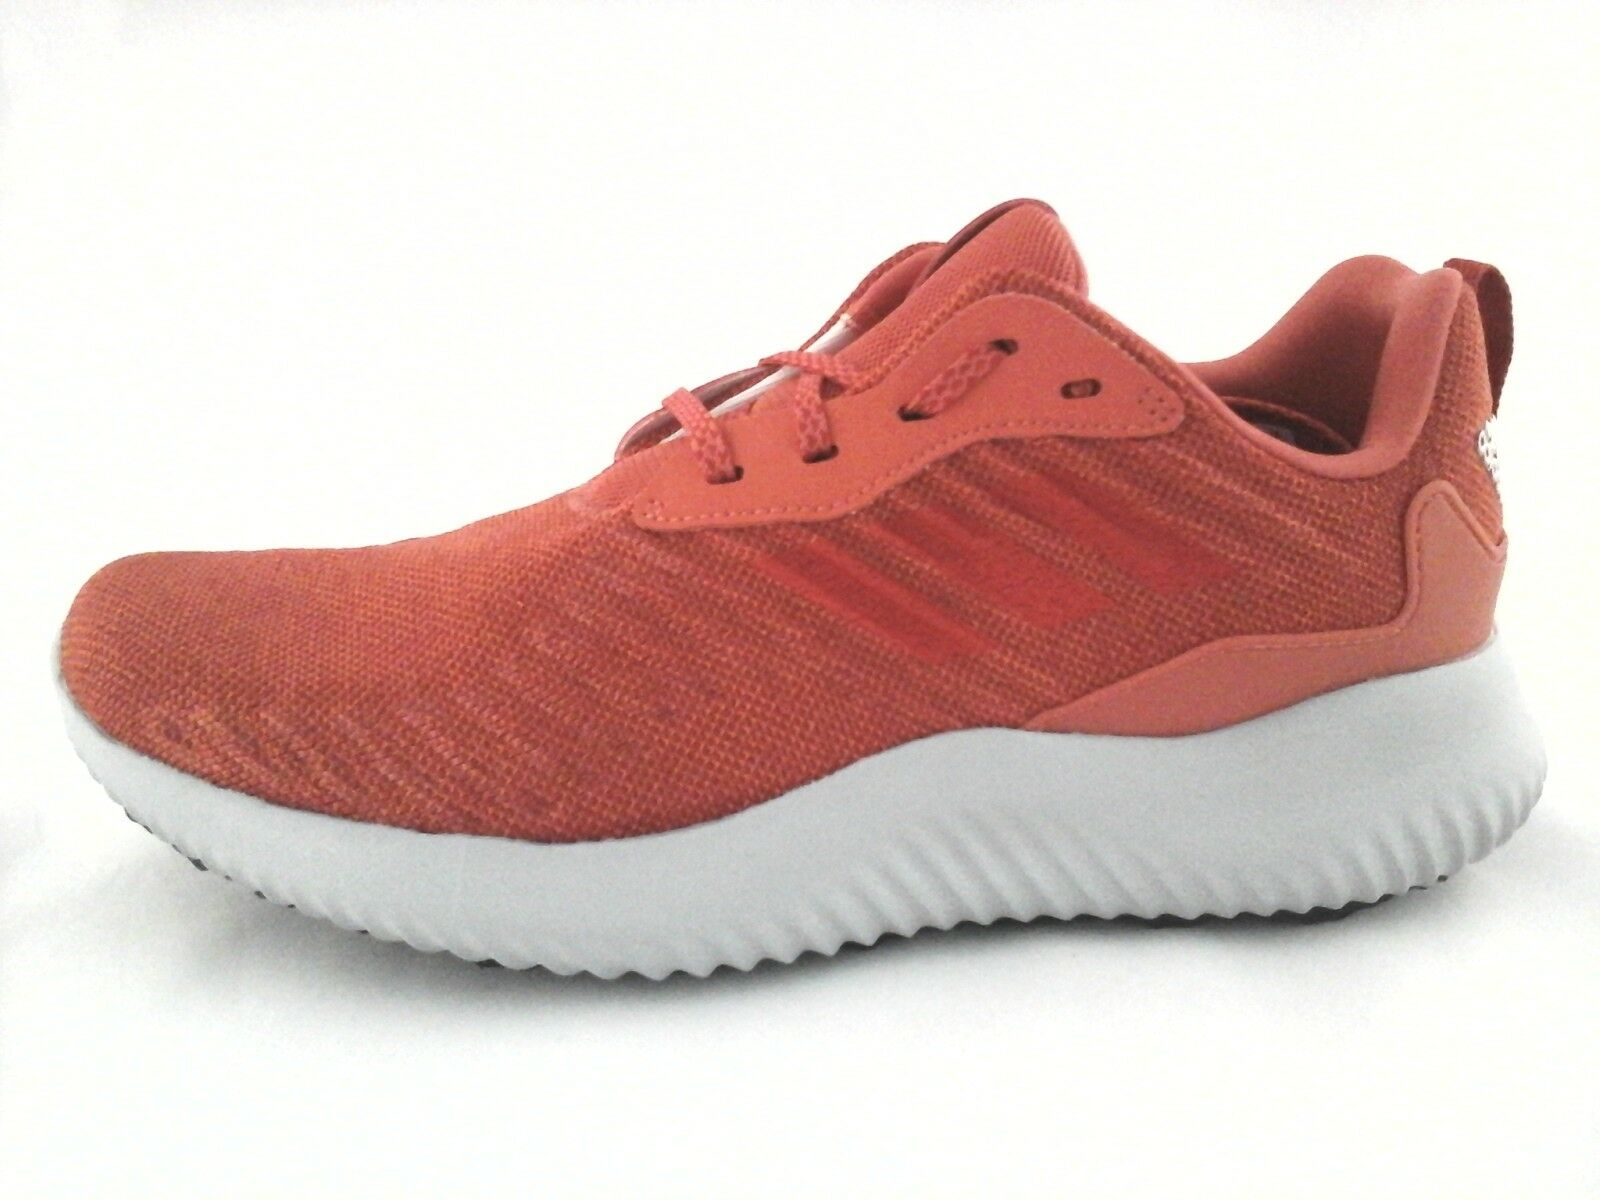 ADIDAS ALPHABOUNCE RC Running Schuhes Damenschuhe Trace Scarlet ROT Orange CG4746 New